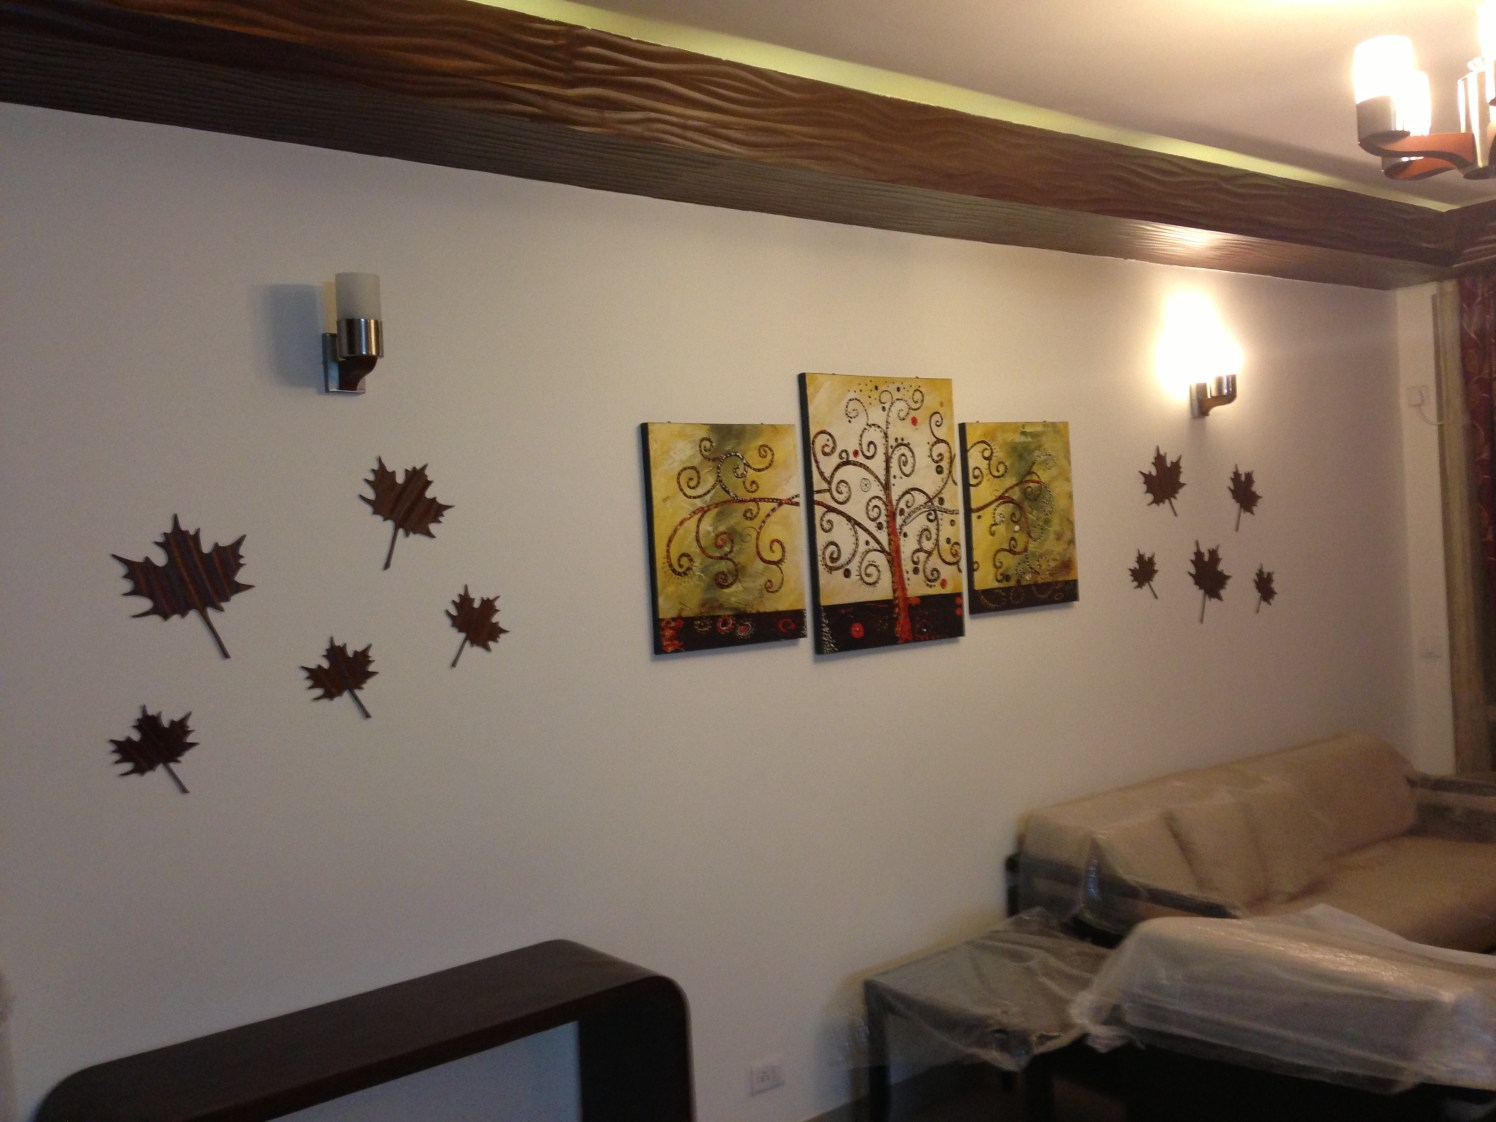 Artistic Wall Hangings by Kavita Pant Living-room Contemporary | Interior Design Photos & Ideas